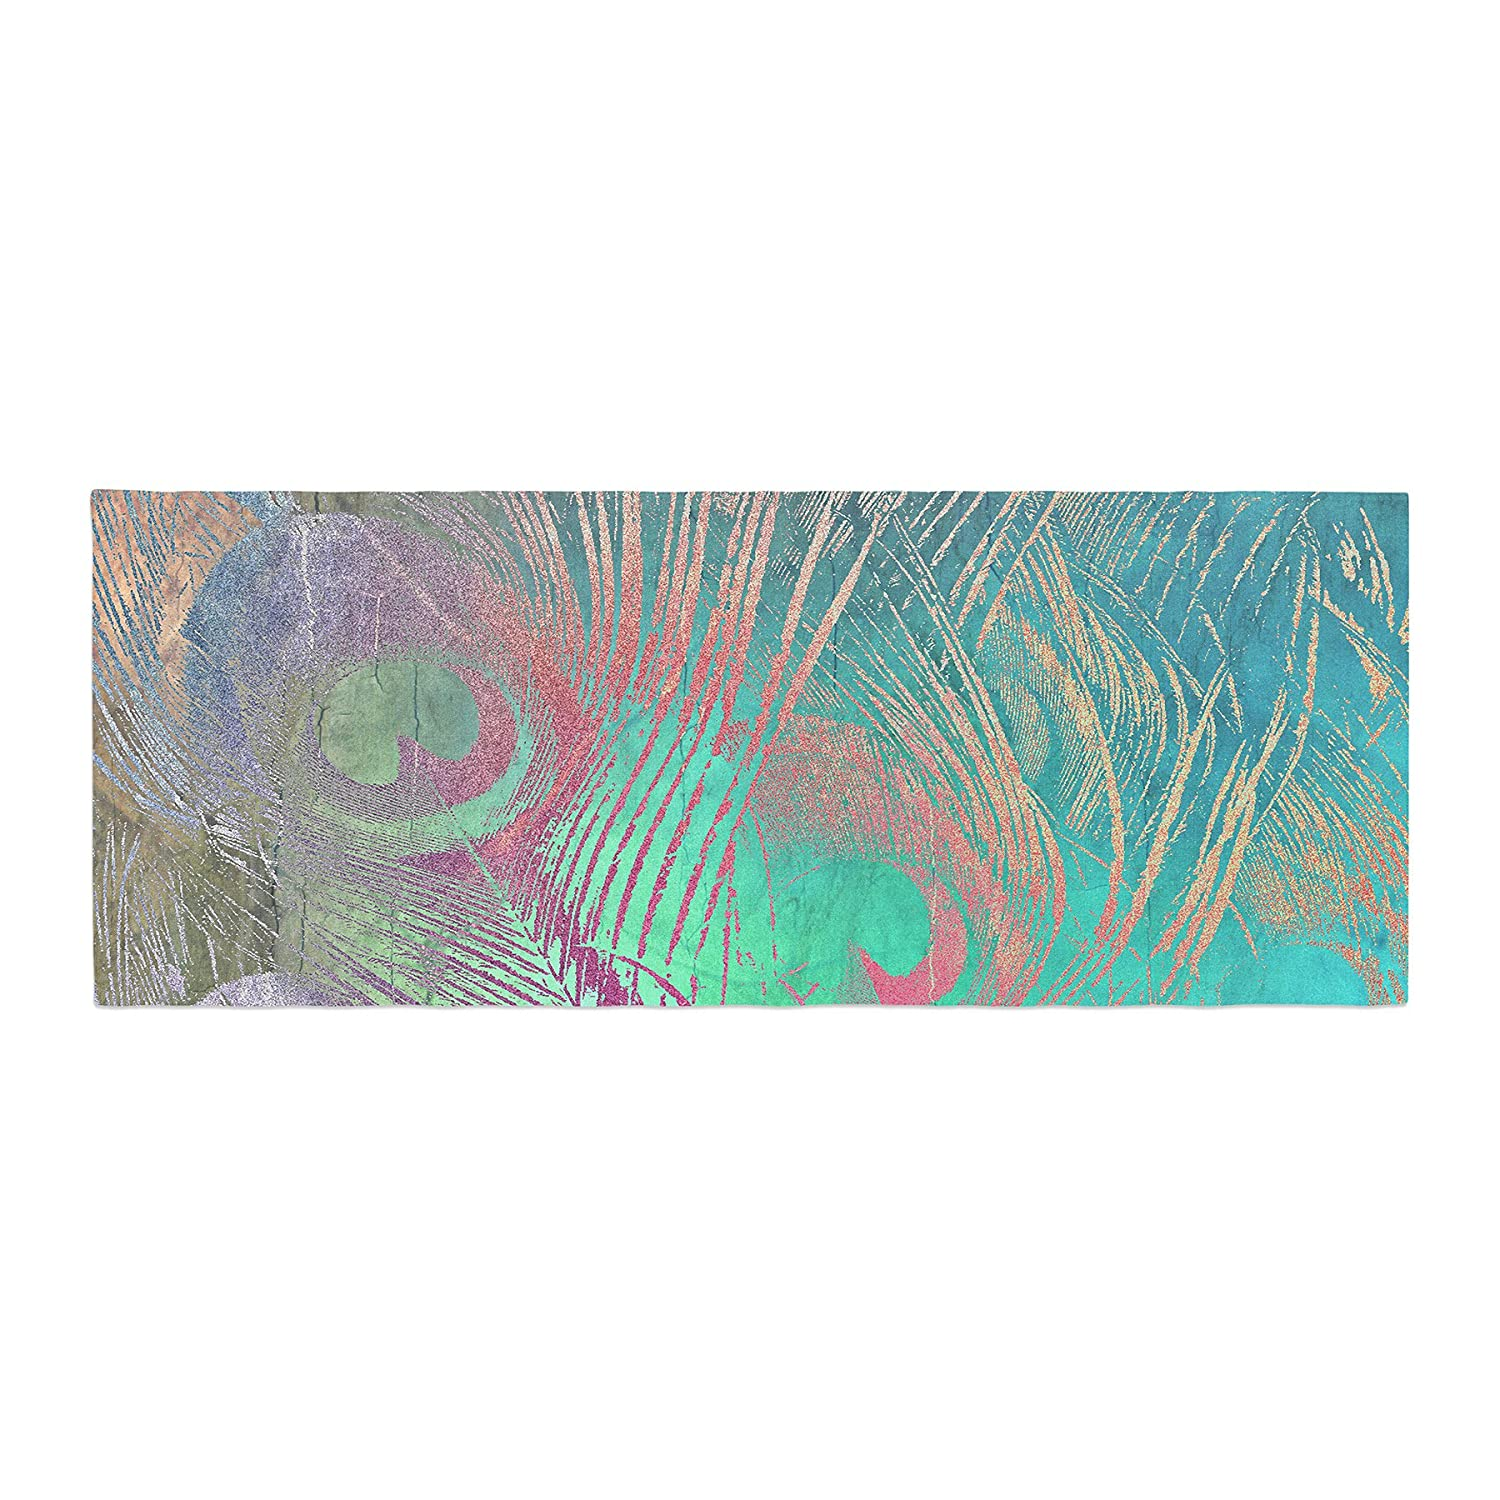 Kess InHouse Alison Coxon Indian Summer Purple Teal Abstract Bed Runner, 34